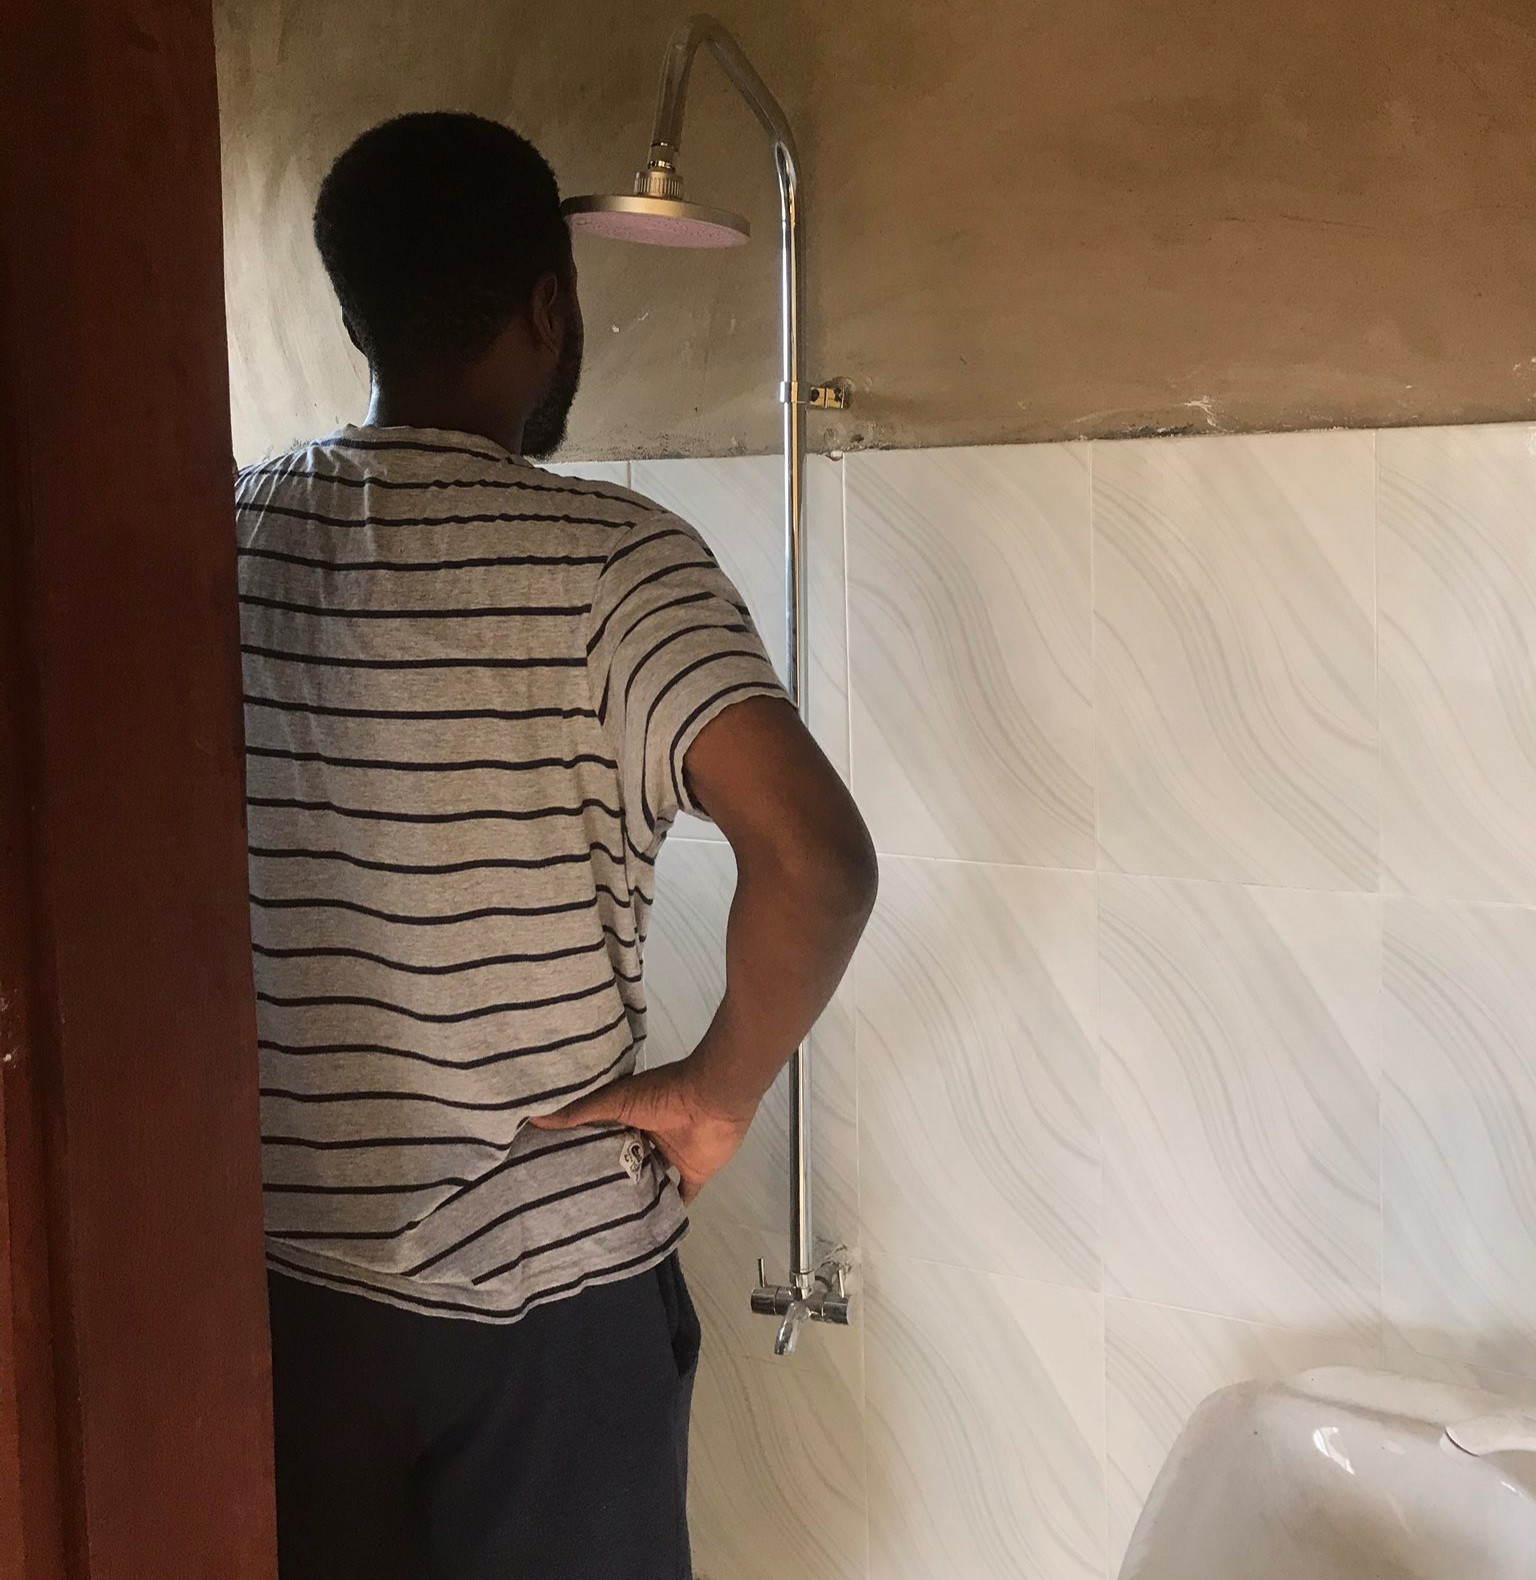 Medical doctor shares photos of an apartment in Ibadan going for N700K